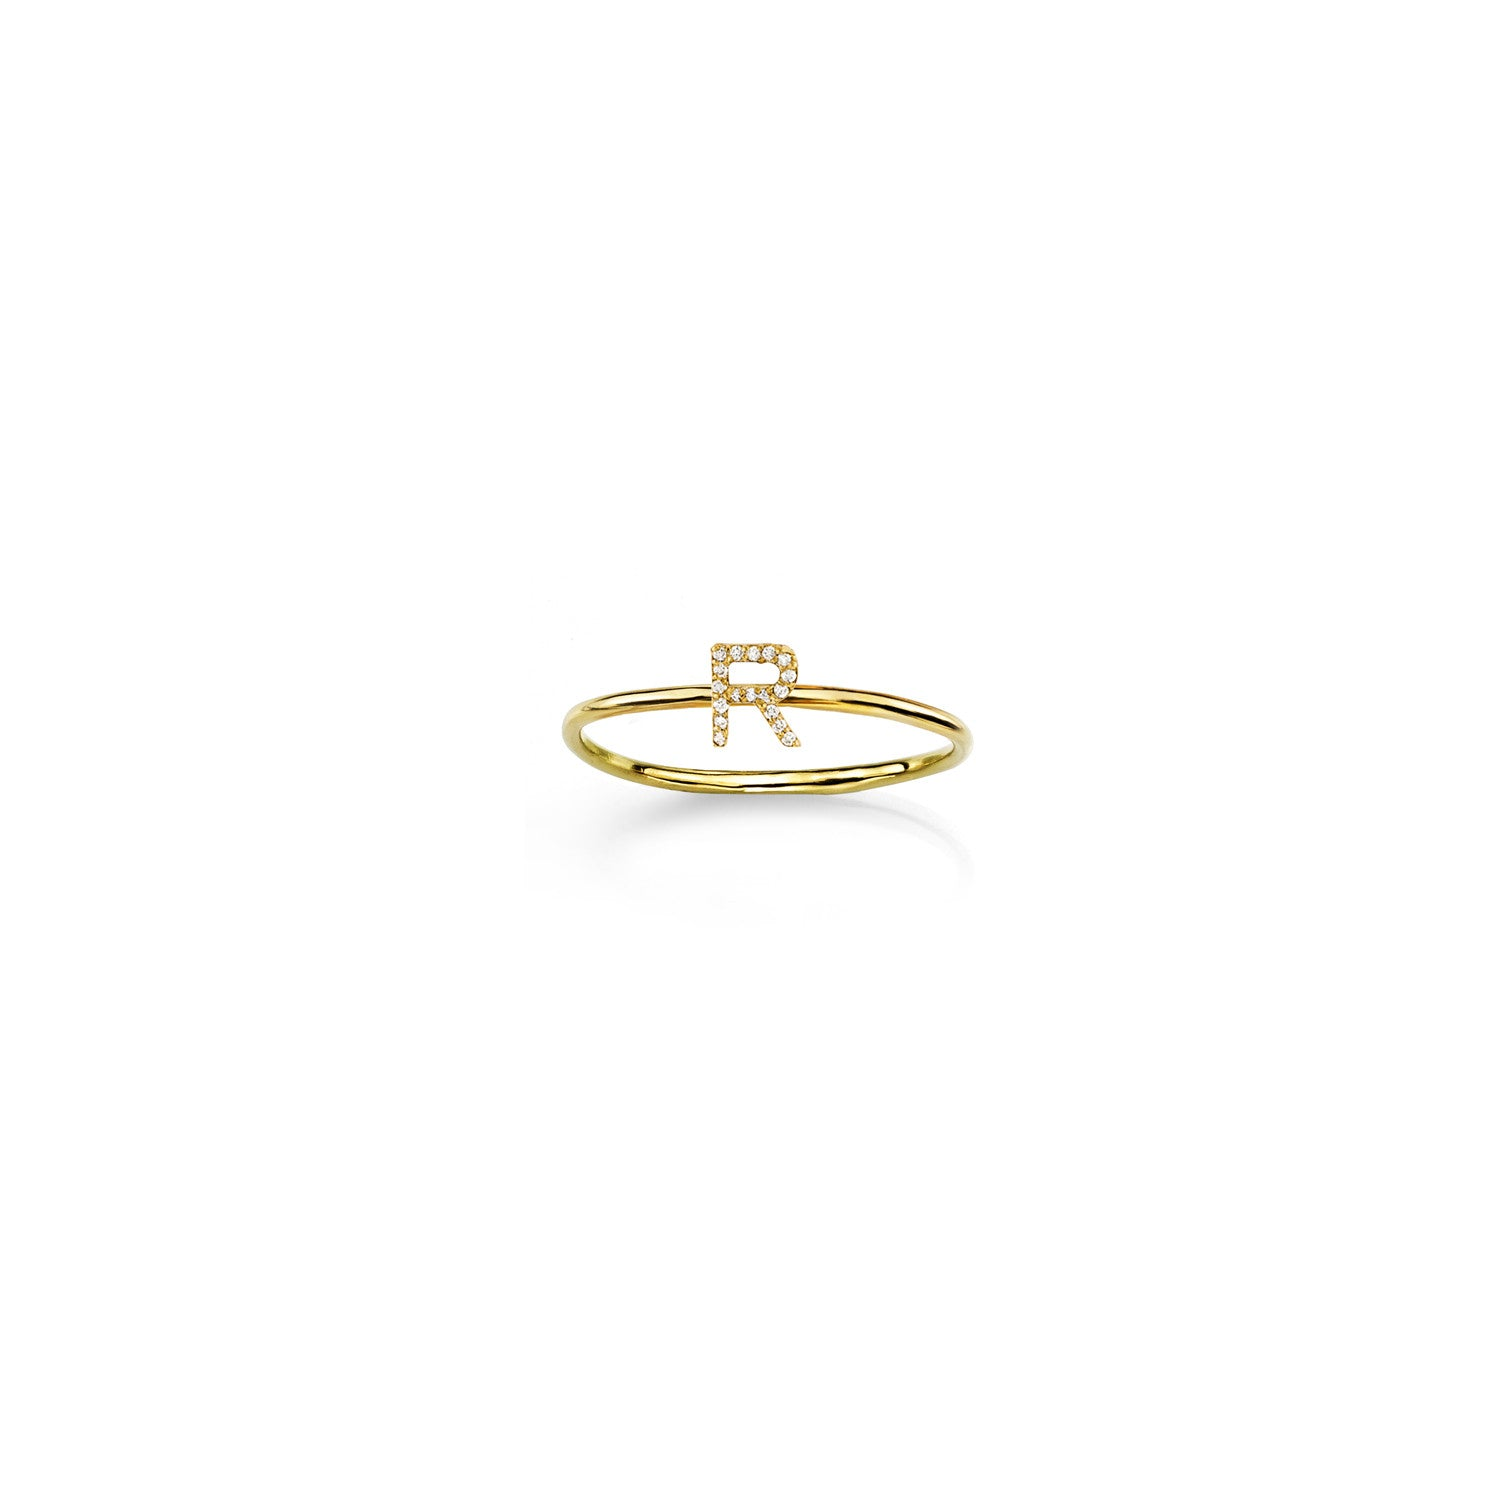 diamonds acdf with gold rings ring maya geller products